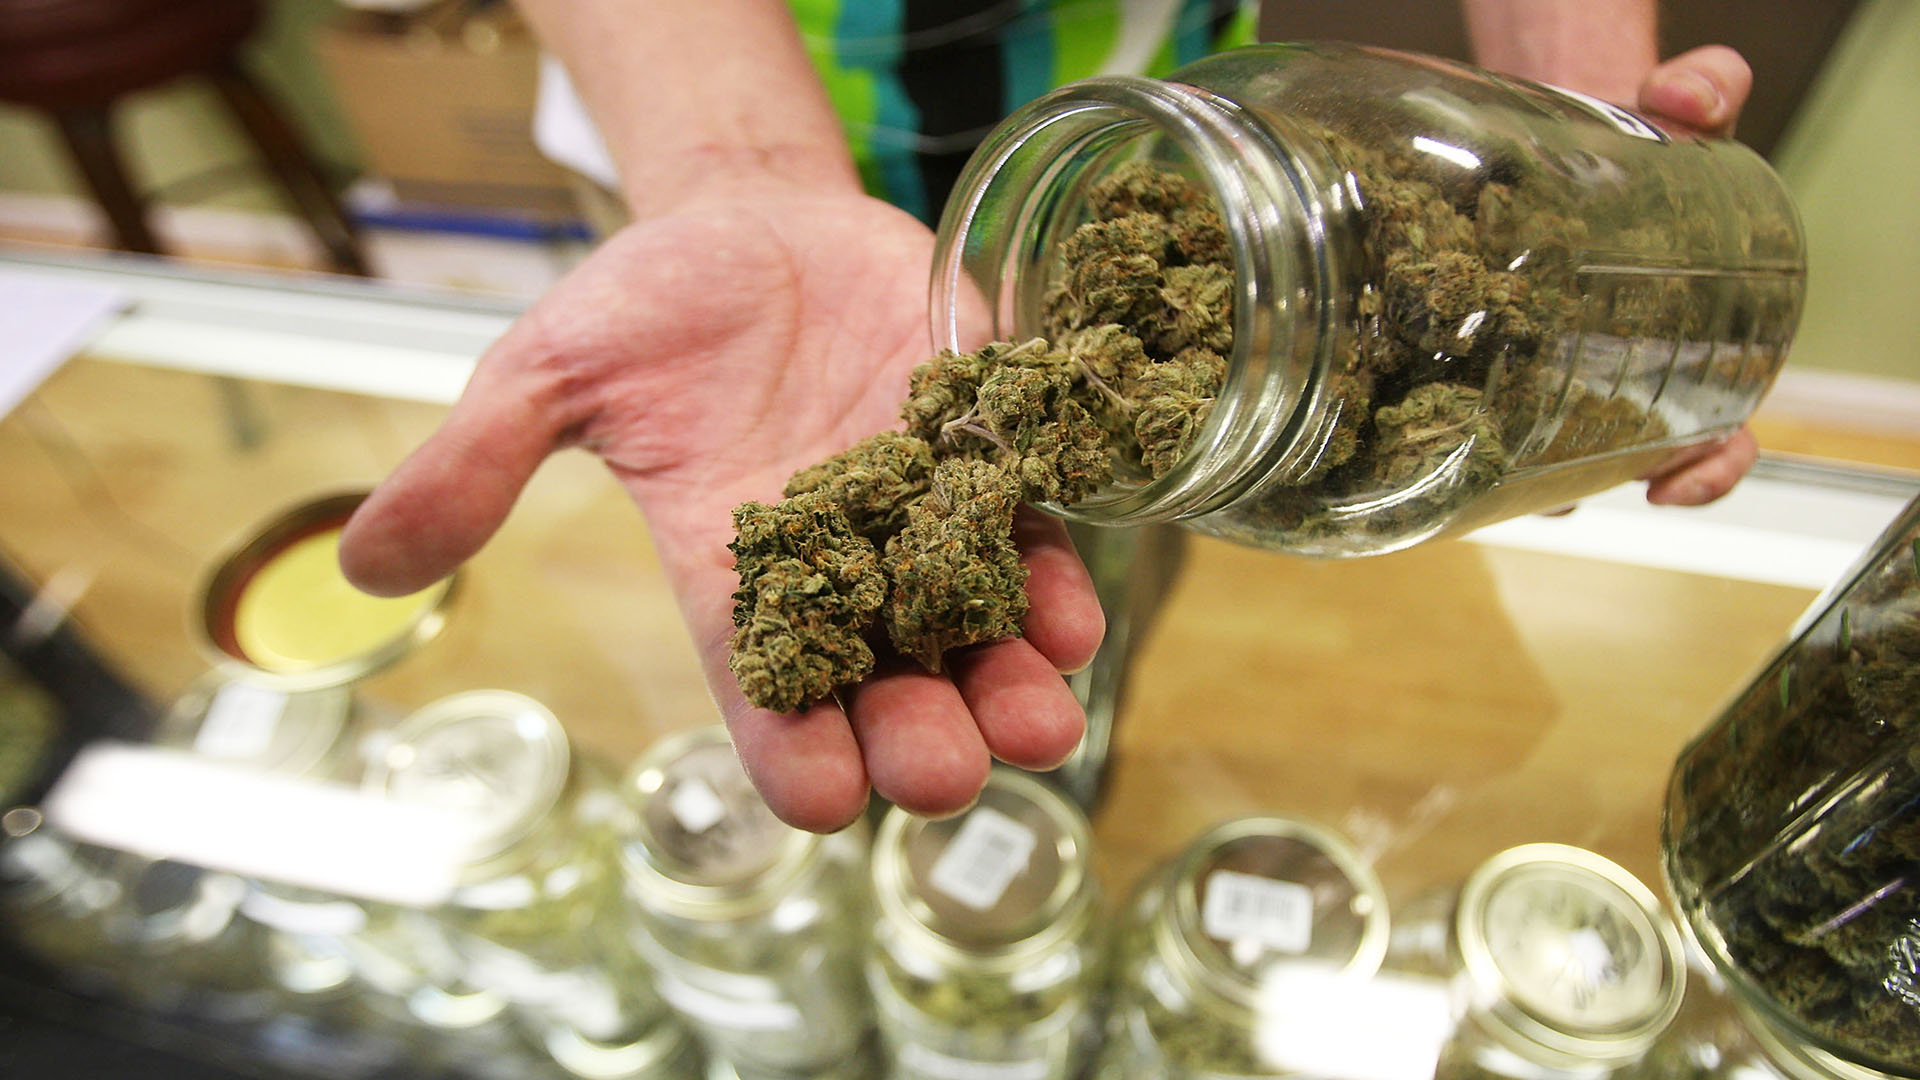 Eligible West Virginians can now apply for medical cannabis